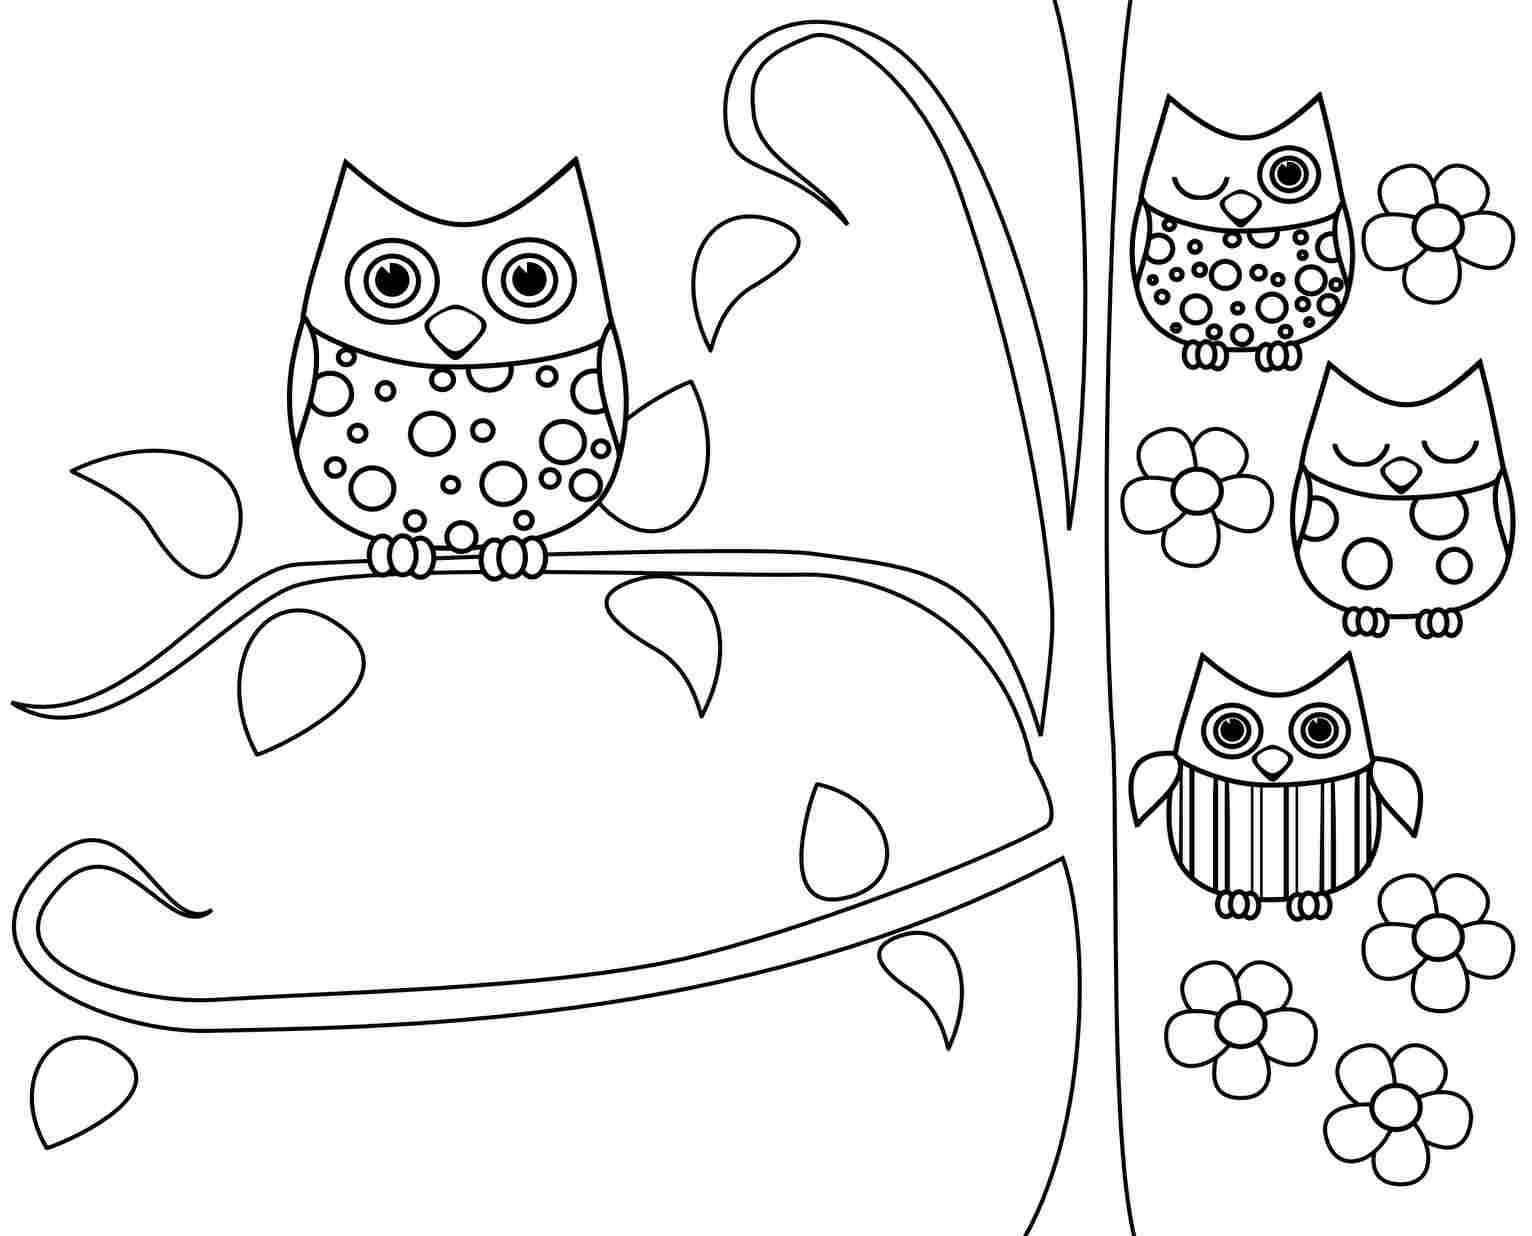 owl-coloring-page-0032-q1